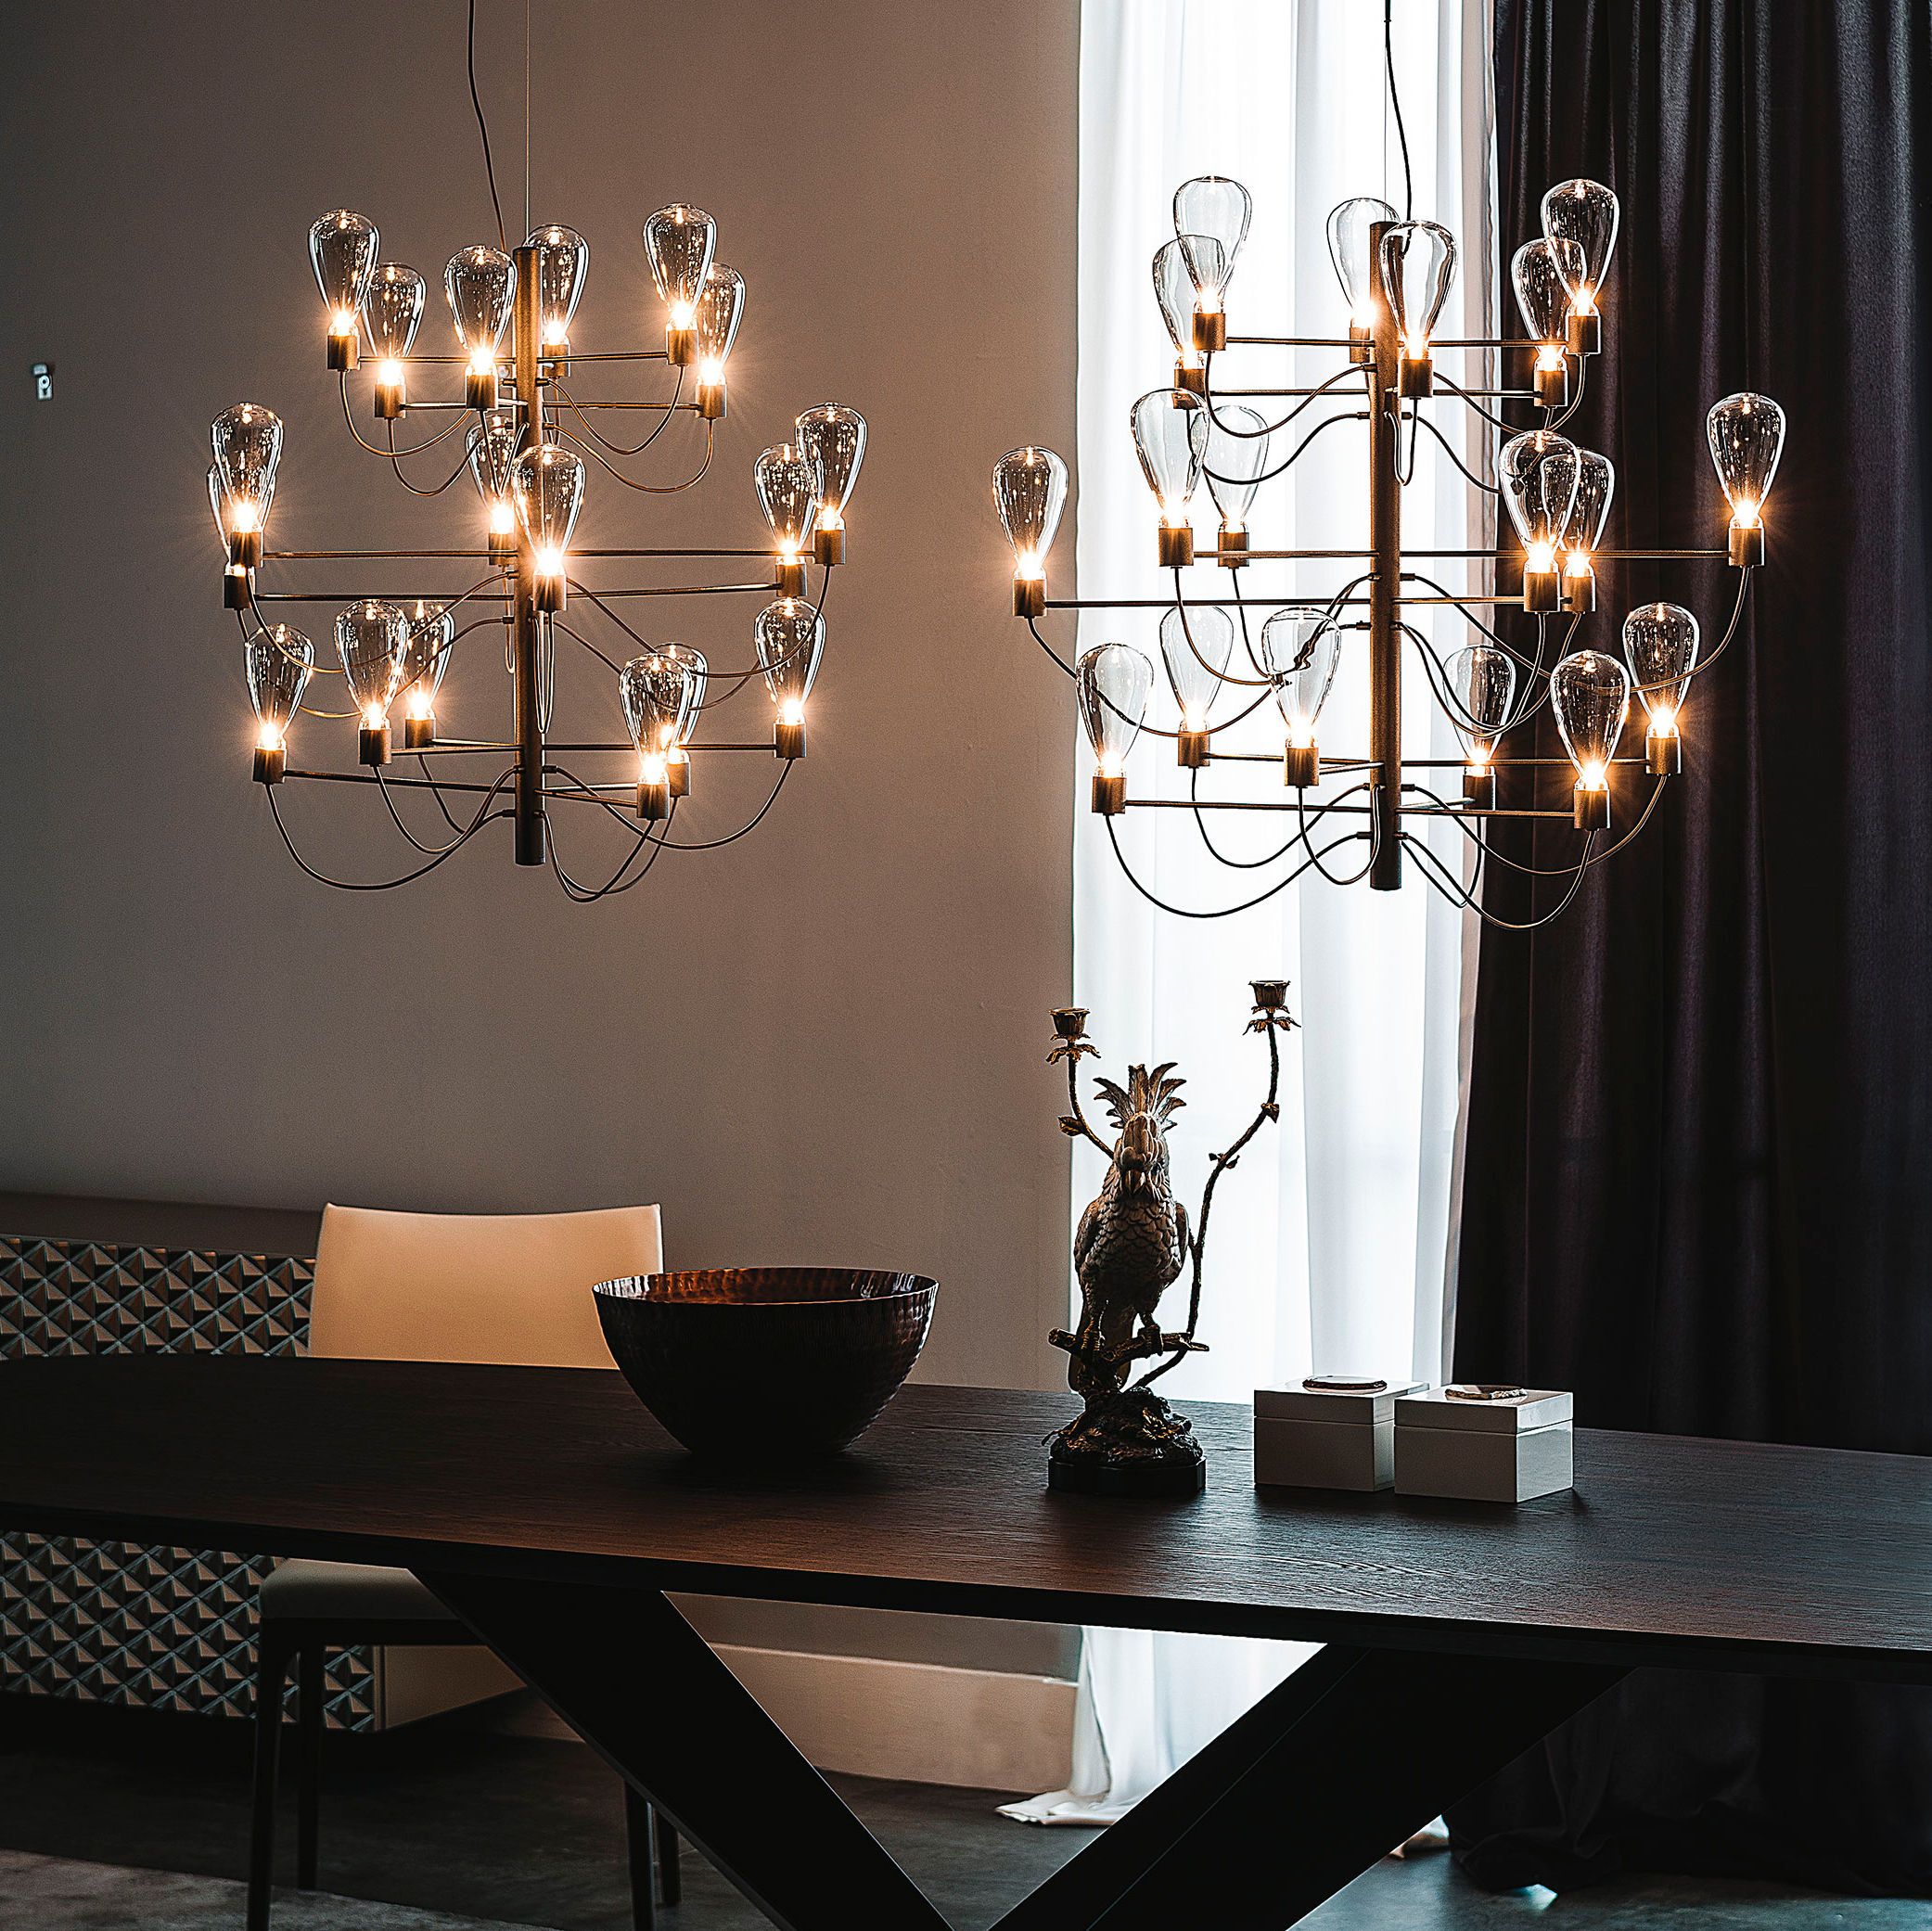 Merveilleux Contemporary Italian Designer Poseidon Chandelier   Italian Designer U0026 Luxury  Furniture At Cassoni